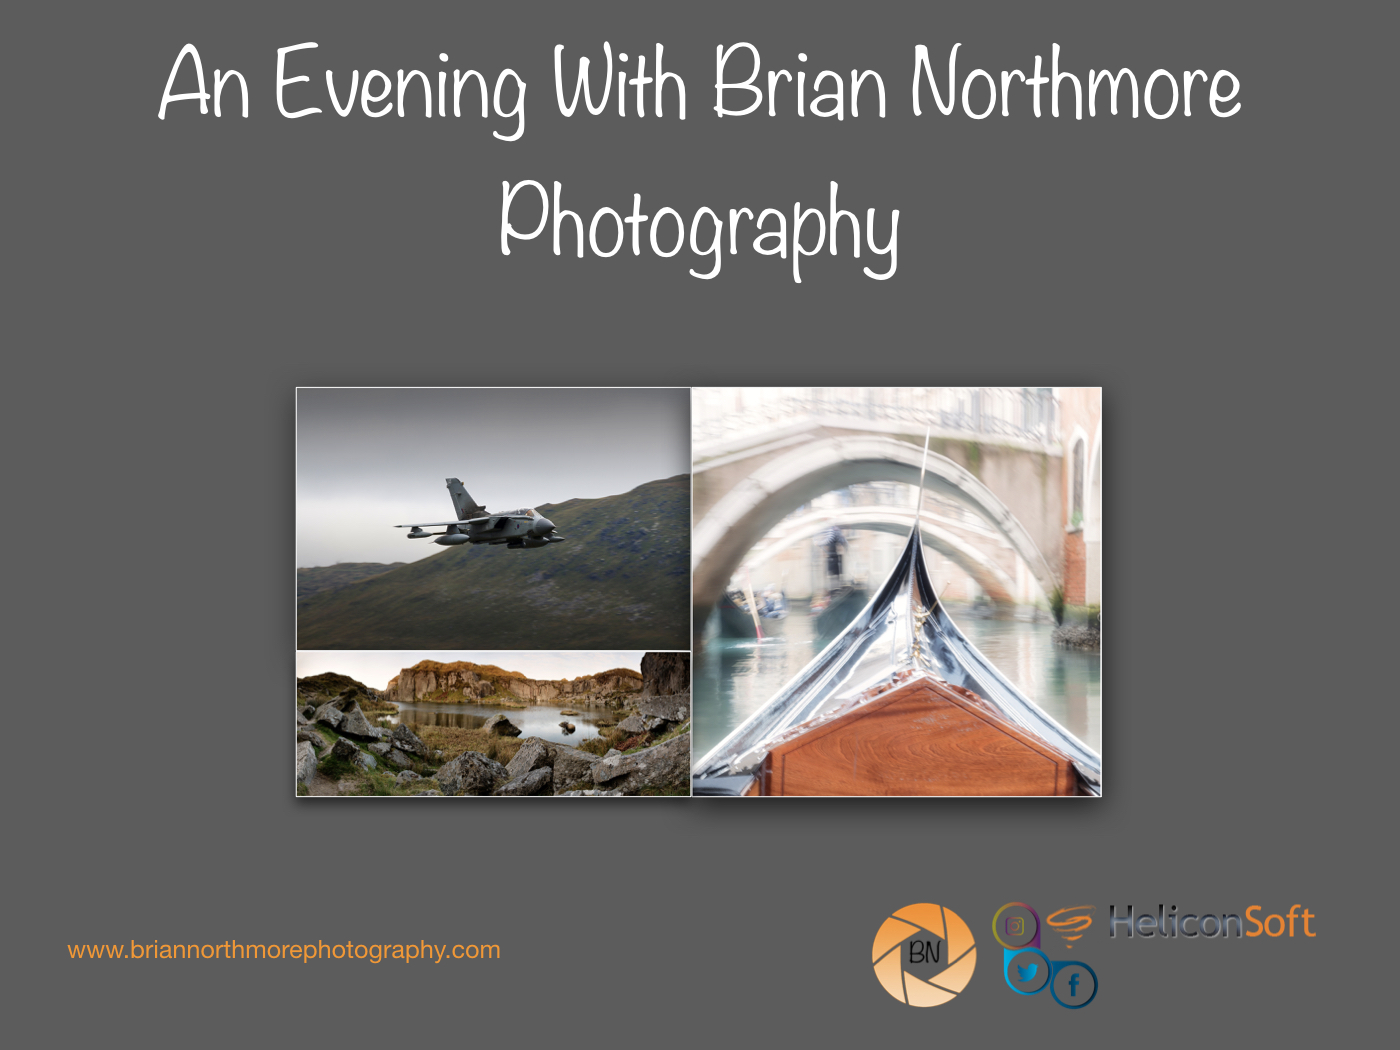 An Evening With Brian Northmore Photography